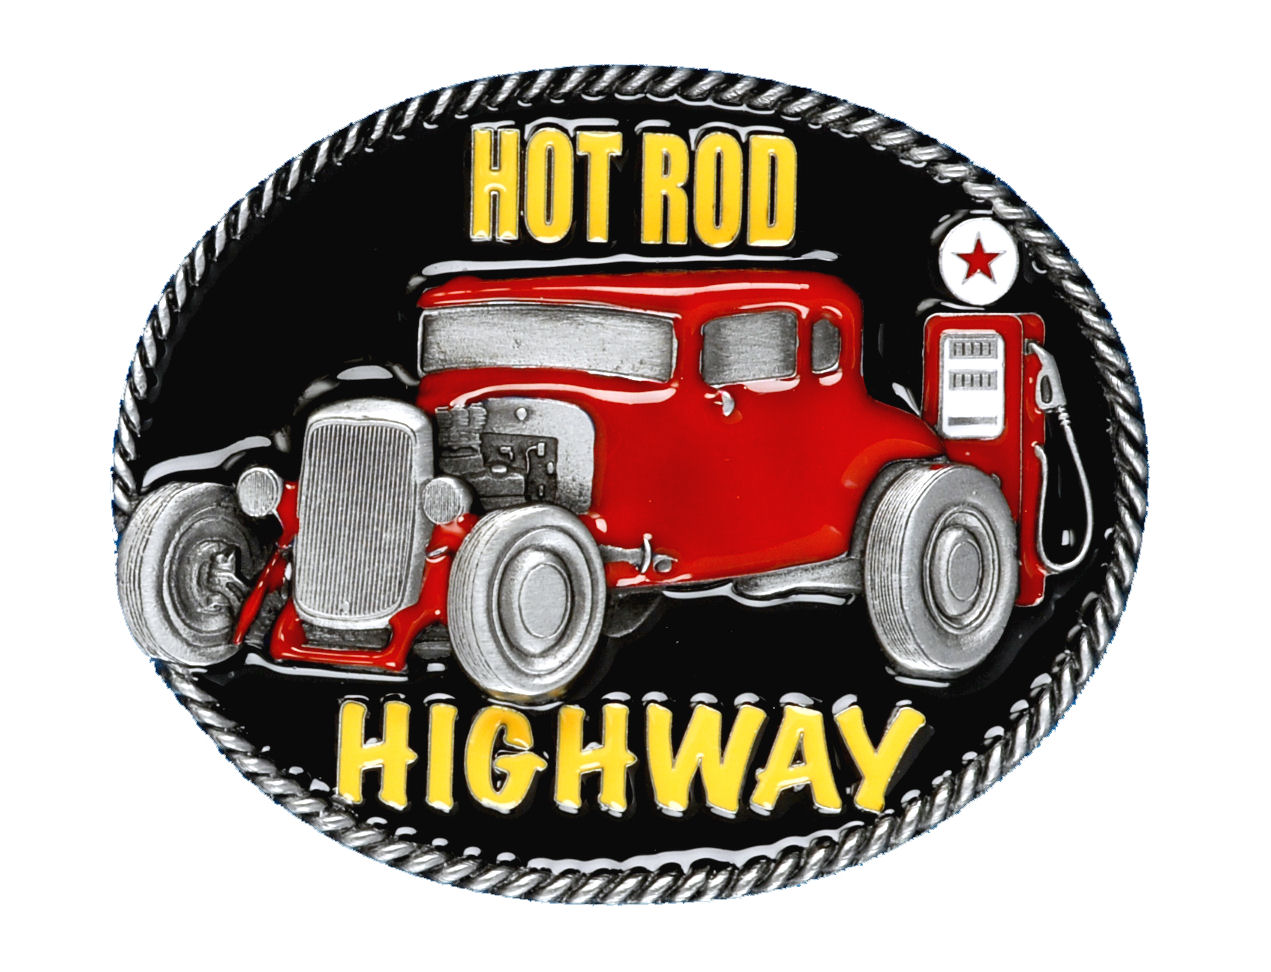 HOT ROD HIGHWAY